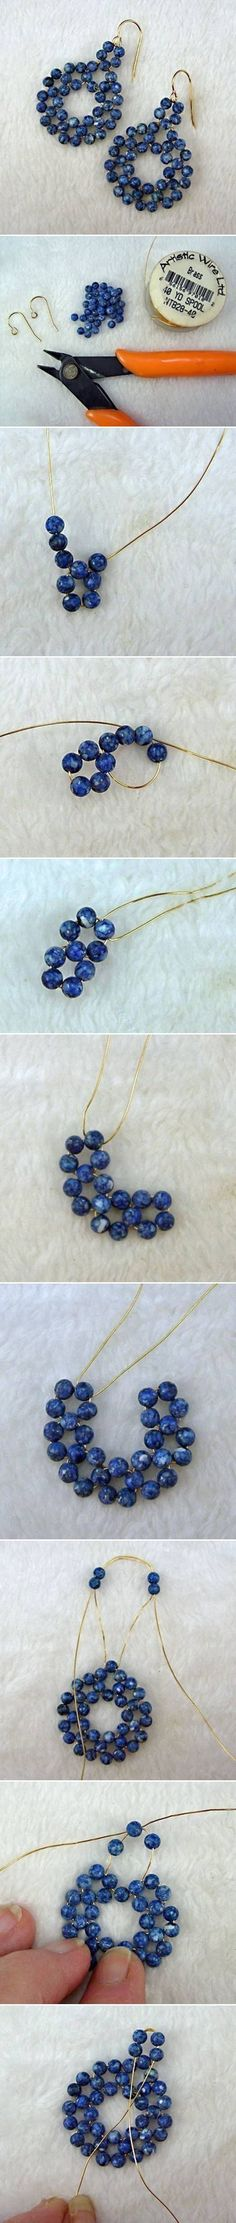 DIY Beads on Wire Earrings DIY Projects